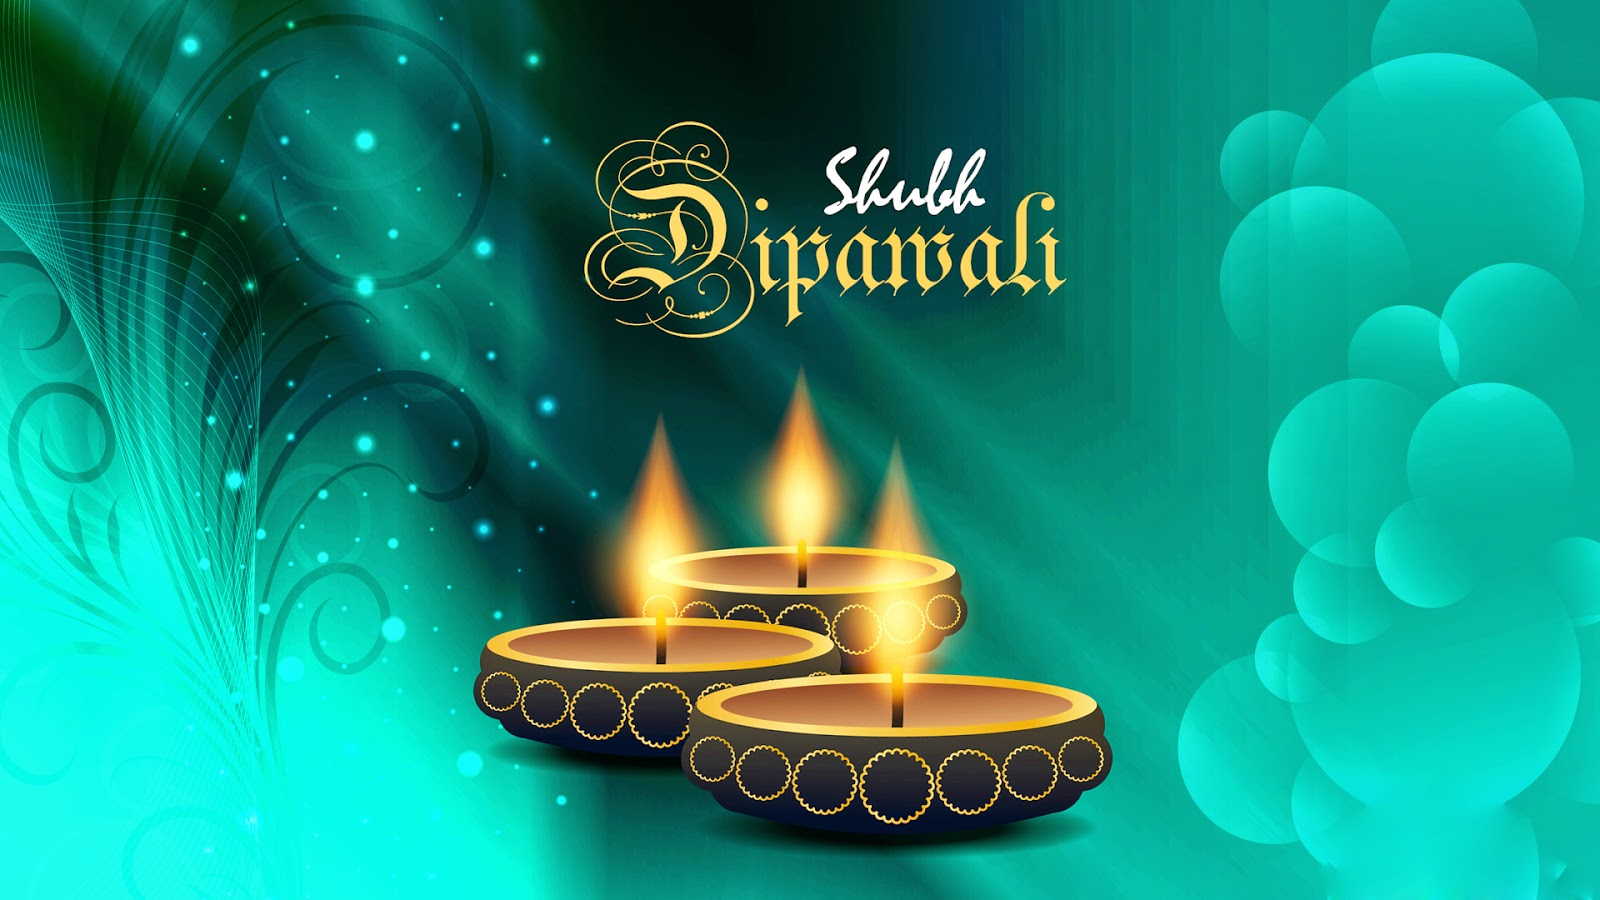 HD Diwali Wallpapers Free